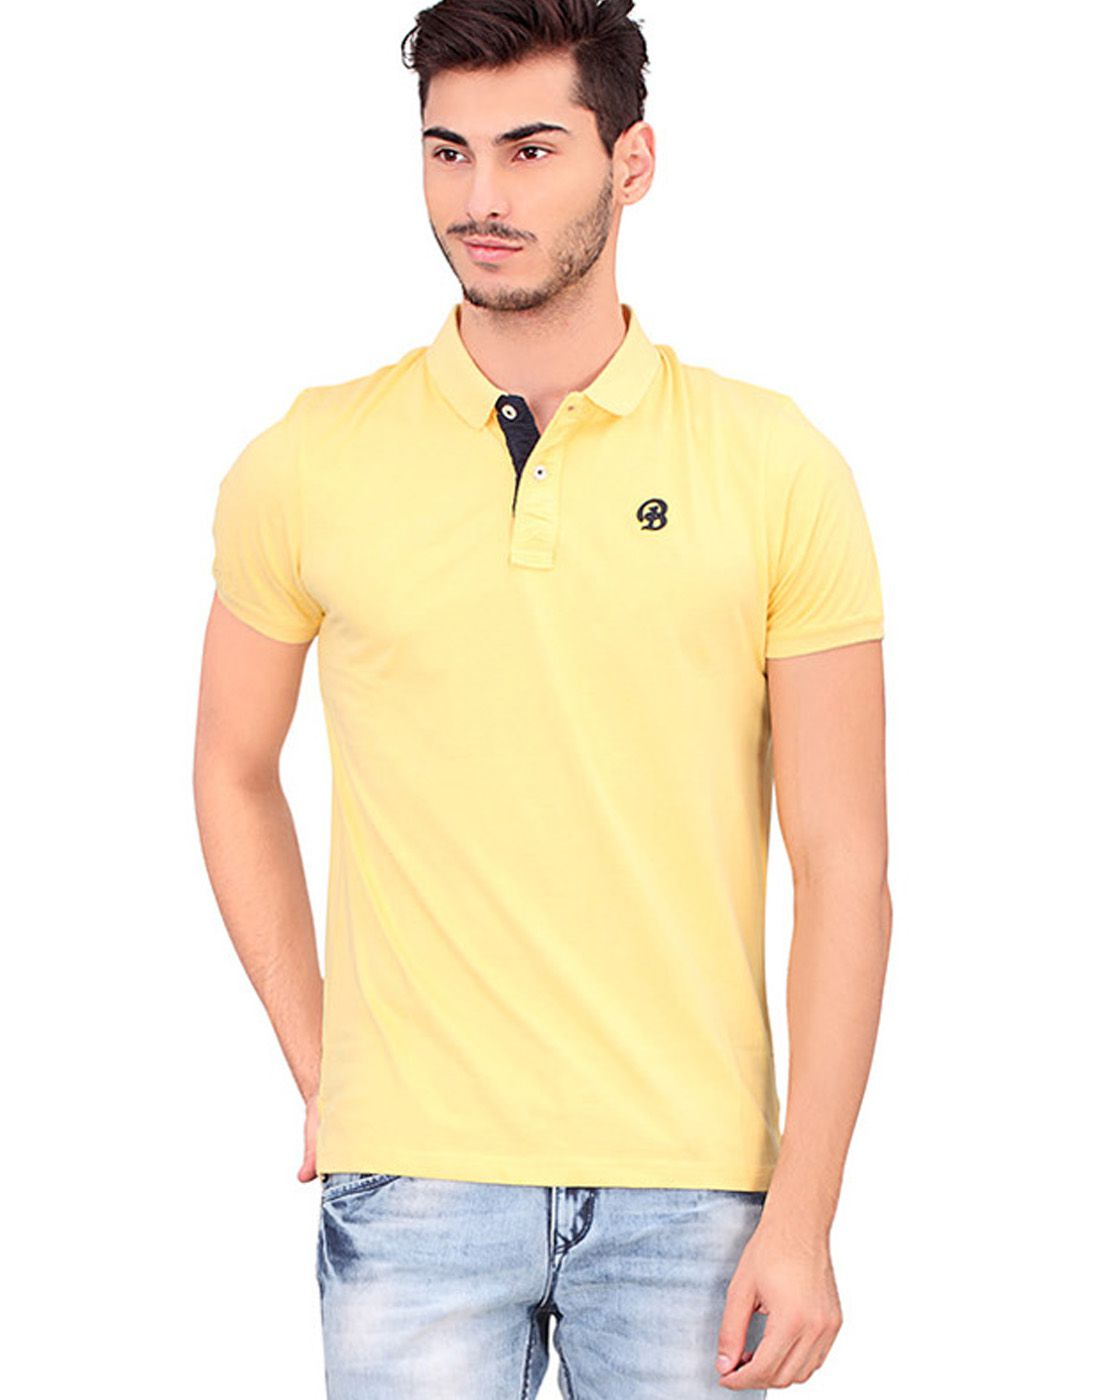 BONATY Yellow 100% Cotton Peach Finish Polo Neck Solid T-Shirt For Men